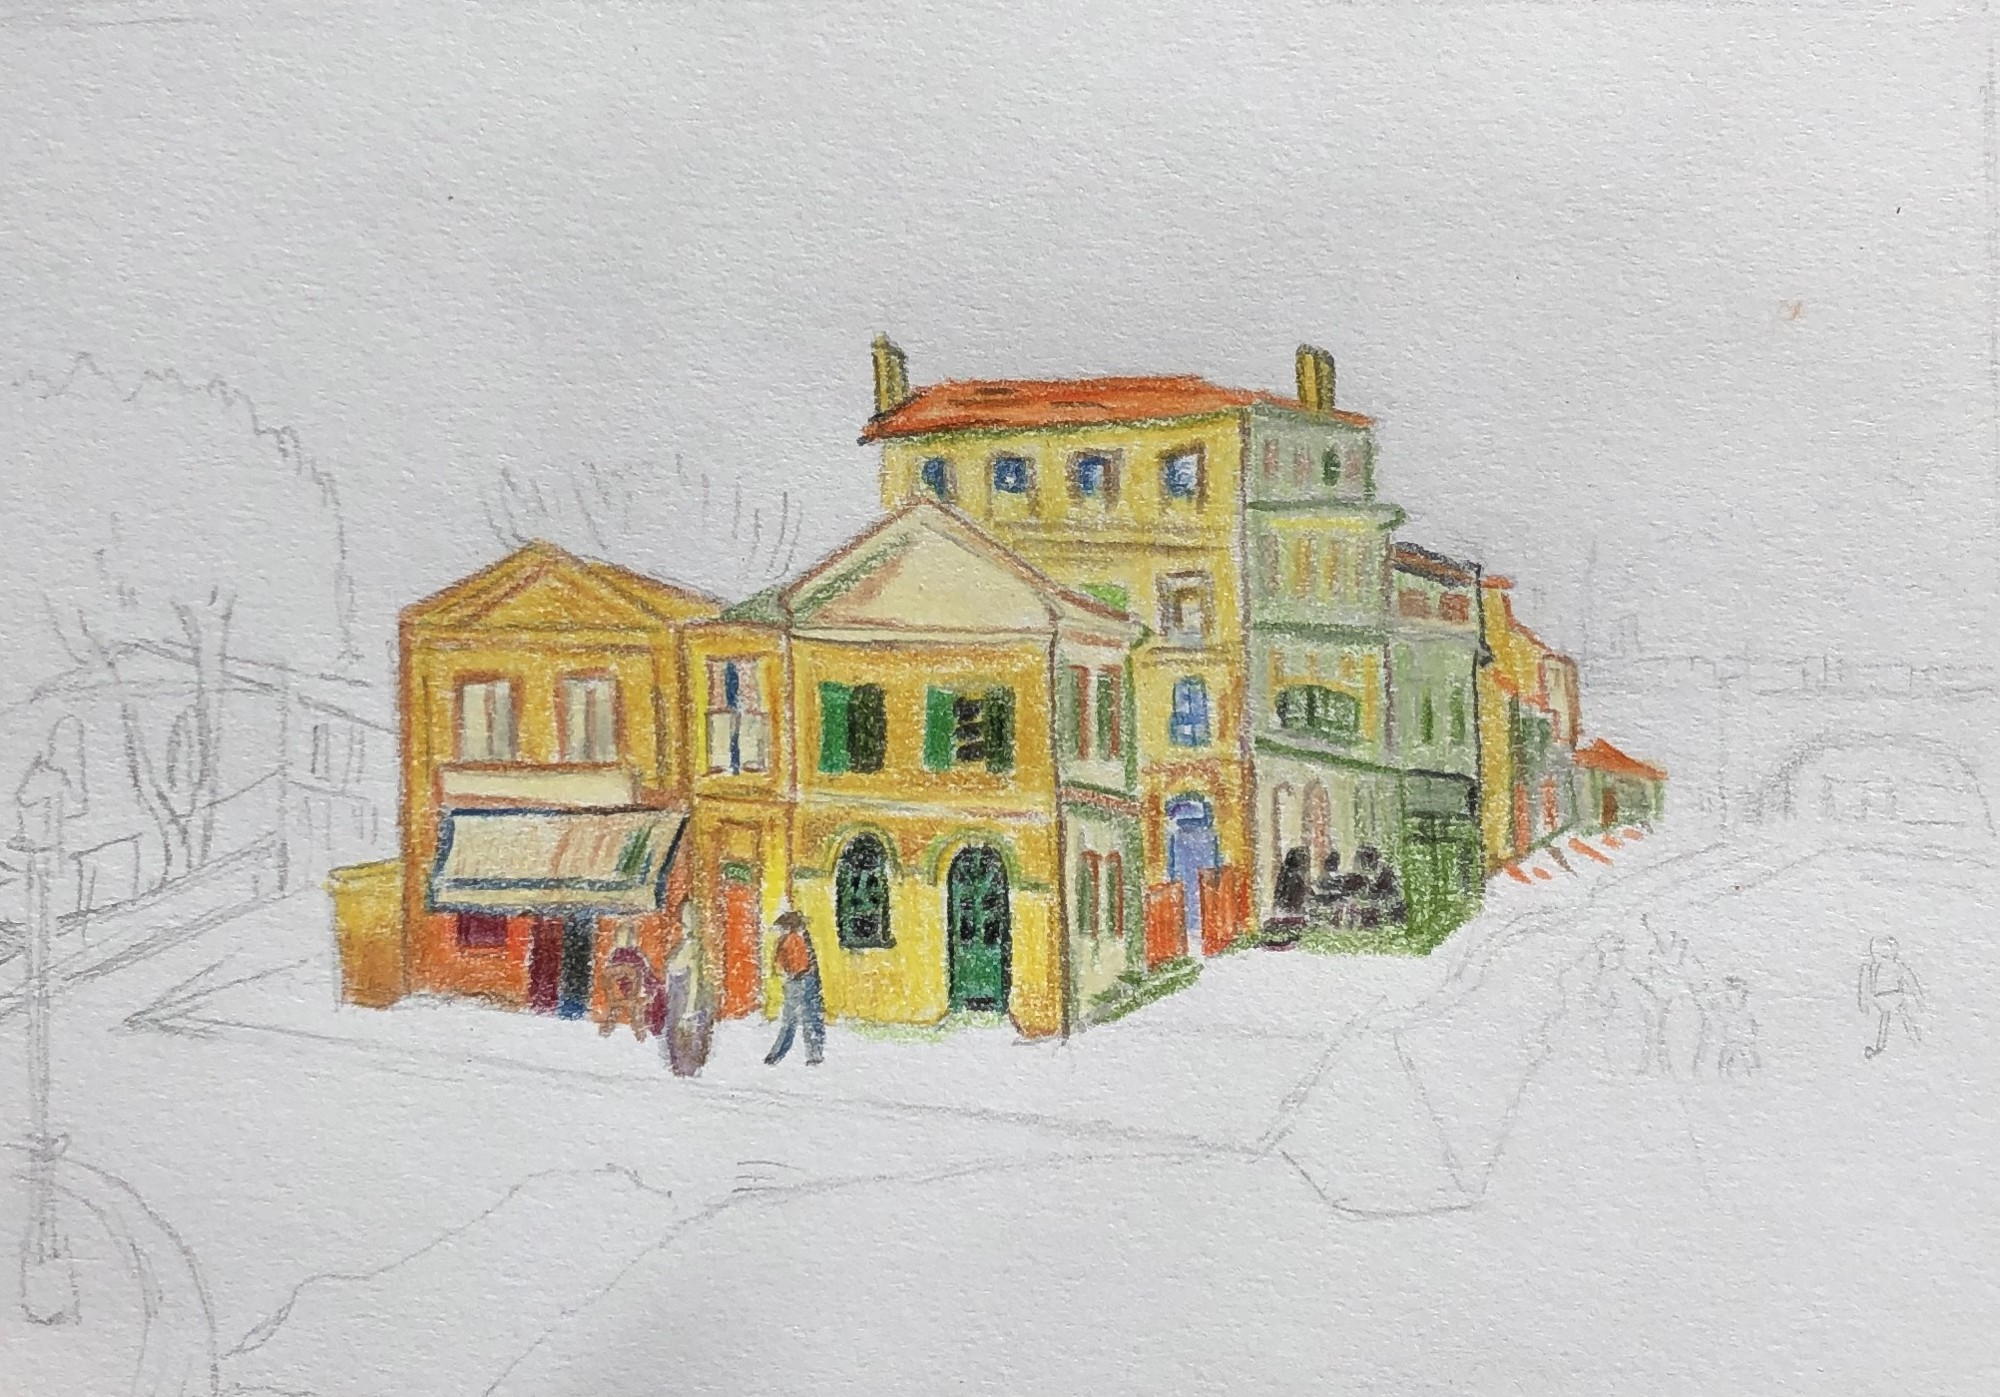 An unfinished drawing of a street corner. Coloured yellow are houses and buildings of different sizes.